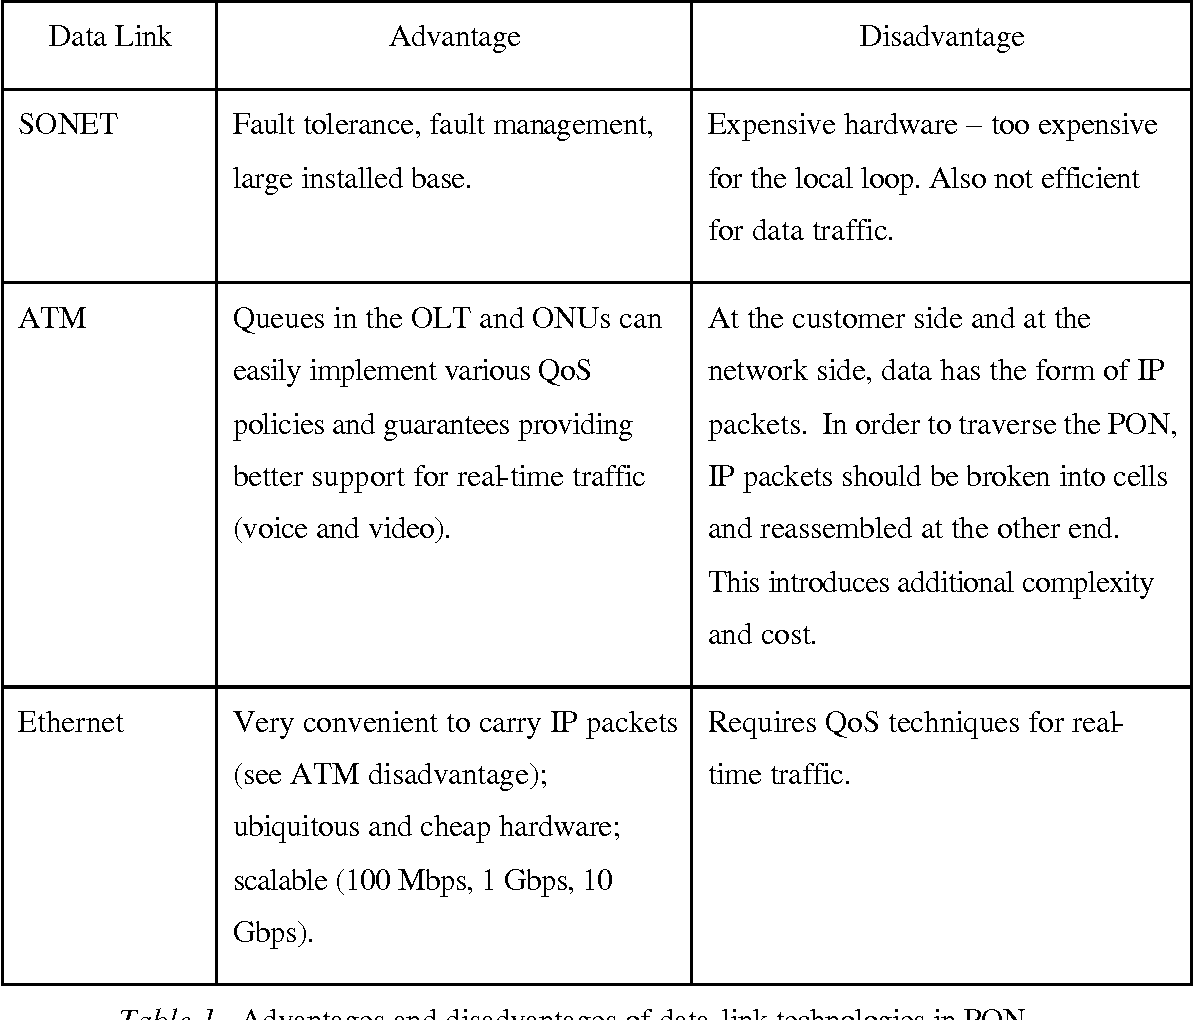 Table 1. Advantages and disadvantages of data-link technologies in PON.